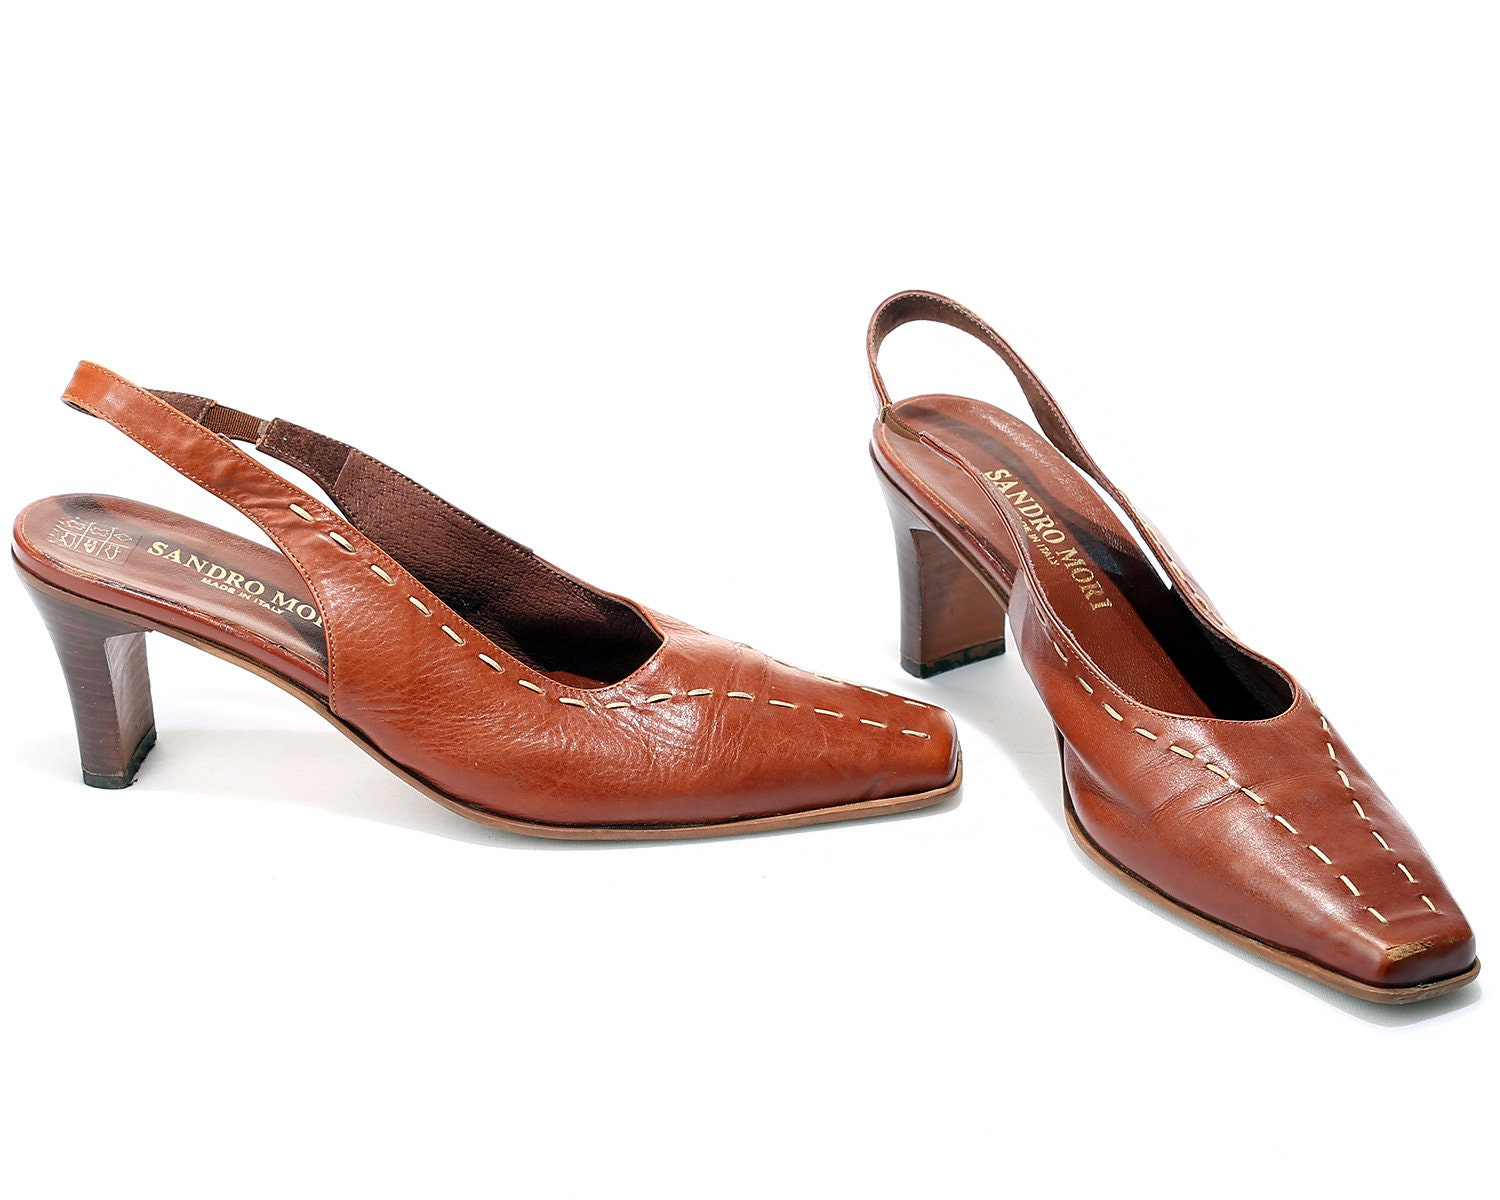 1eb495cb1995a US size 8.5 Brown Italian Mules Sandals 90s Slingback Heels Leather Mules  Shoes Made in Italy Footwear Slide On Heels . Eur 39 Uk 6